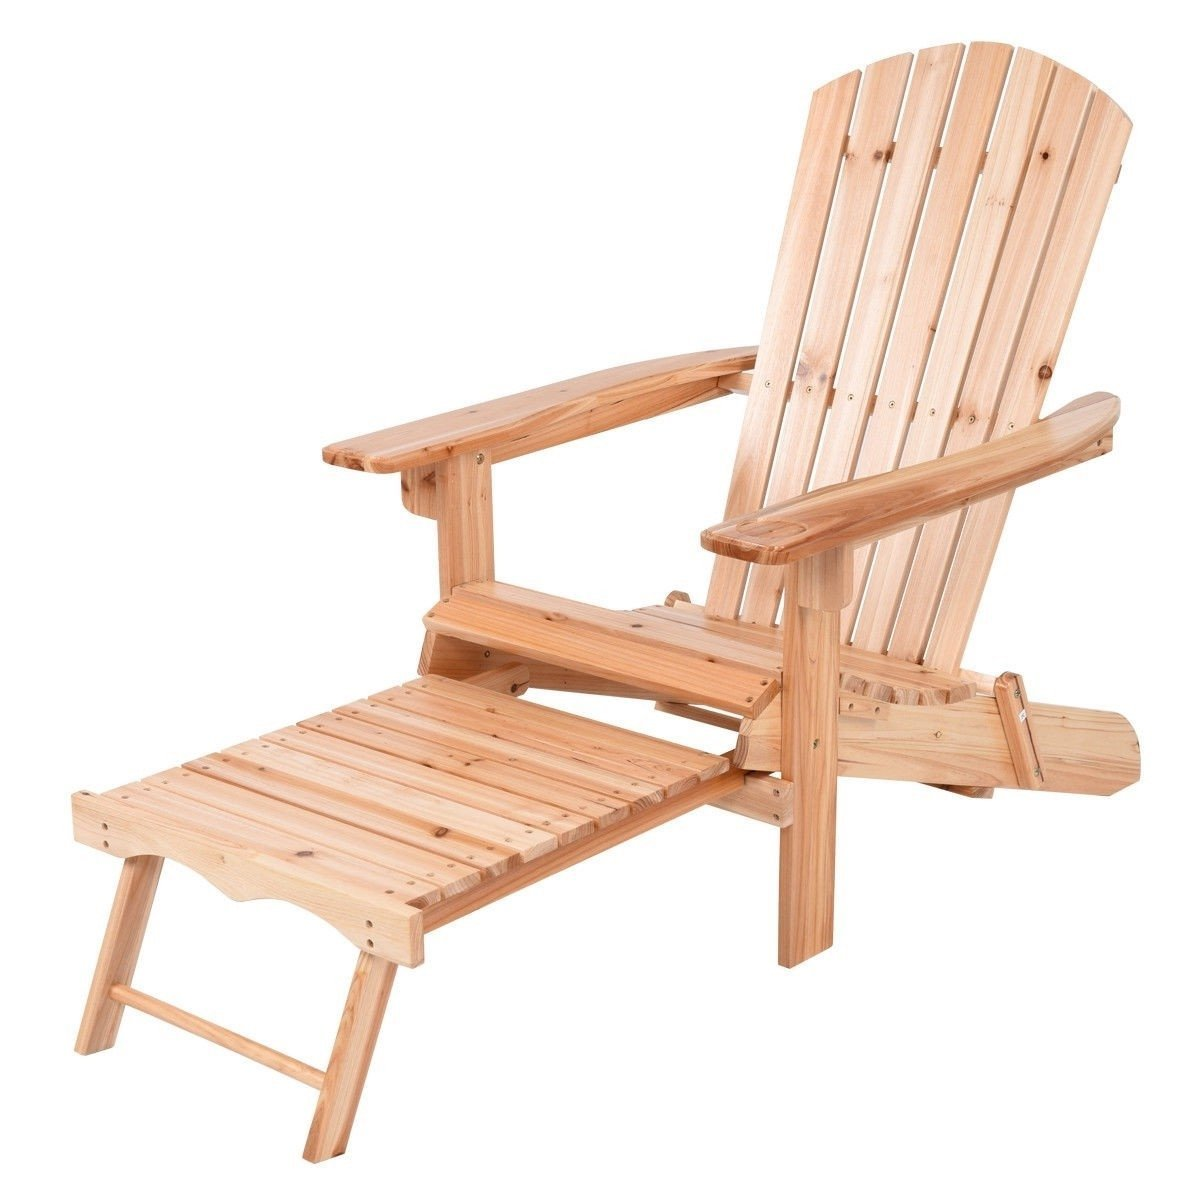 Unfinished Wood Adirondack Chair With Retractable Foot Rest